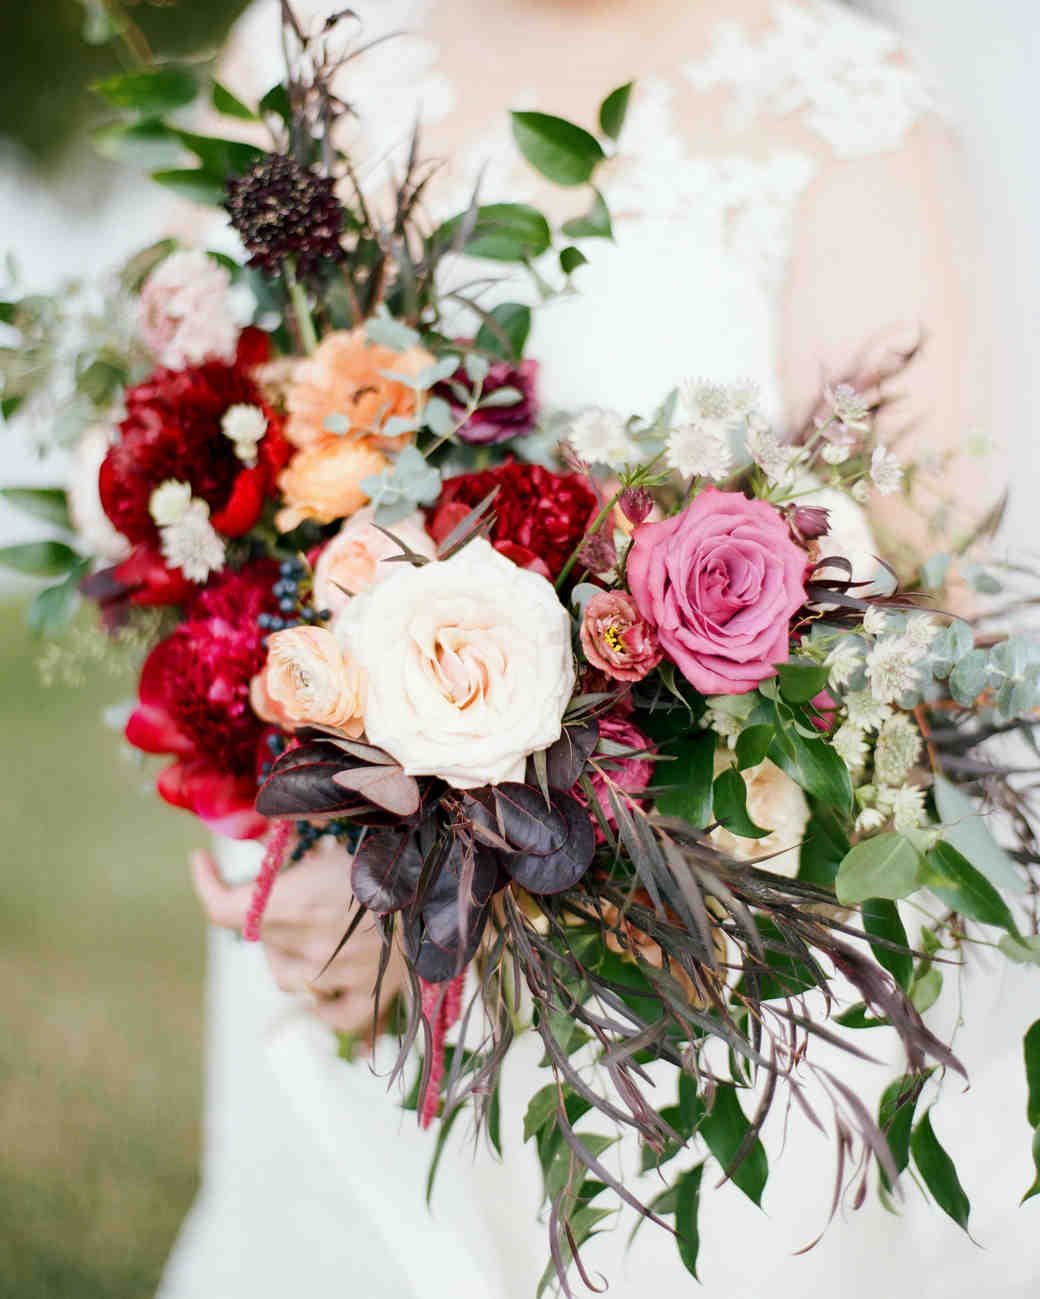 Lifestyle blogger Mollie Moore shares how to choose a color scheme for your wedding